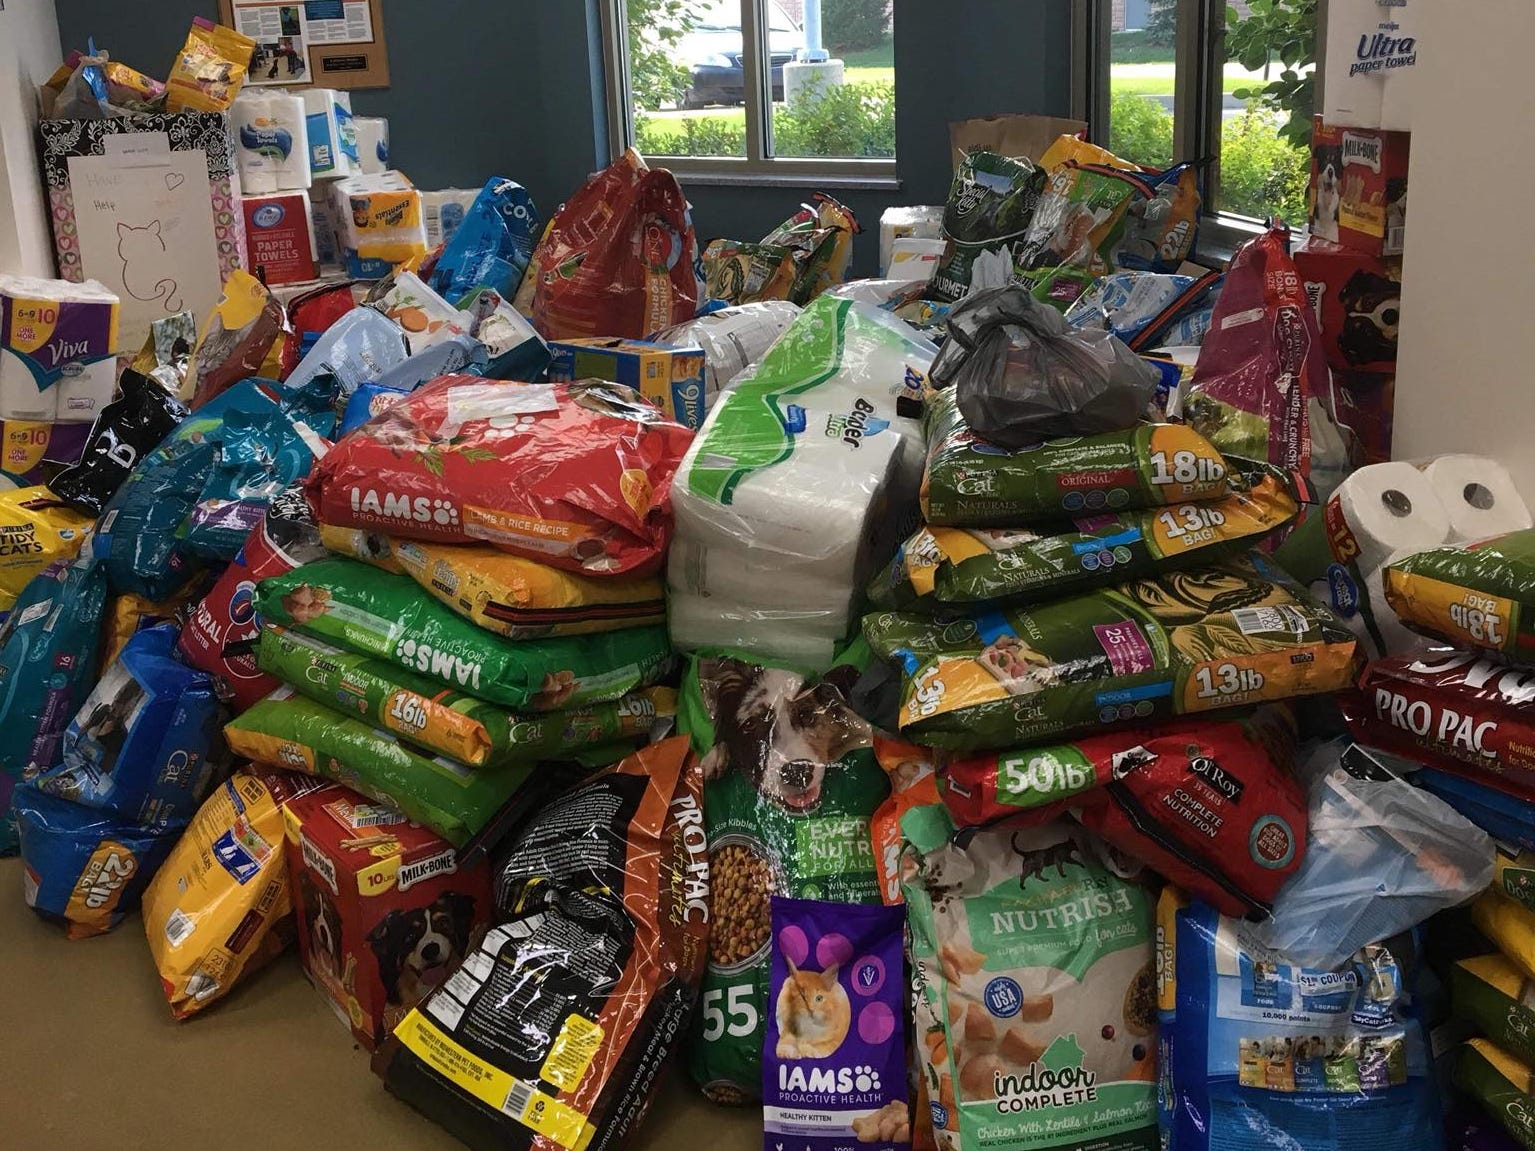 The Hendricks County Animal Shelter lobby quickly filled with donations Thursday after a plea for help.